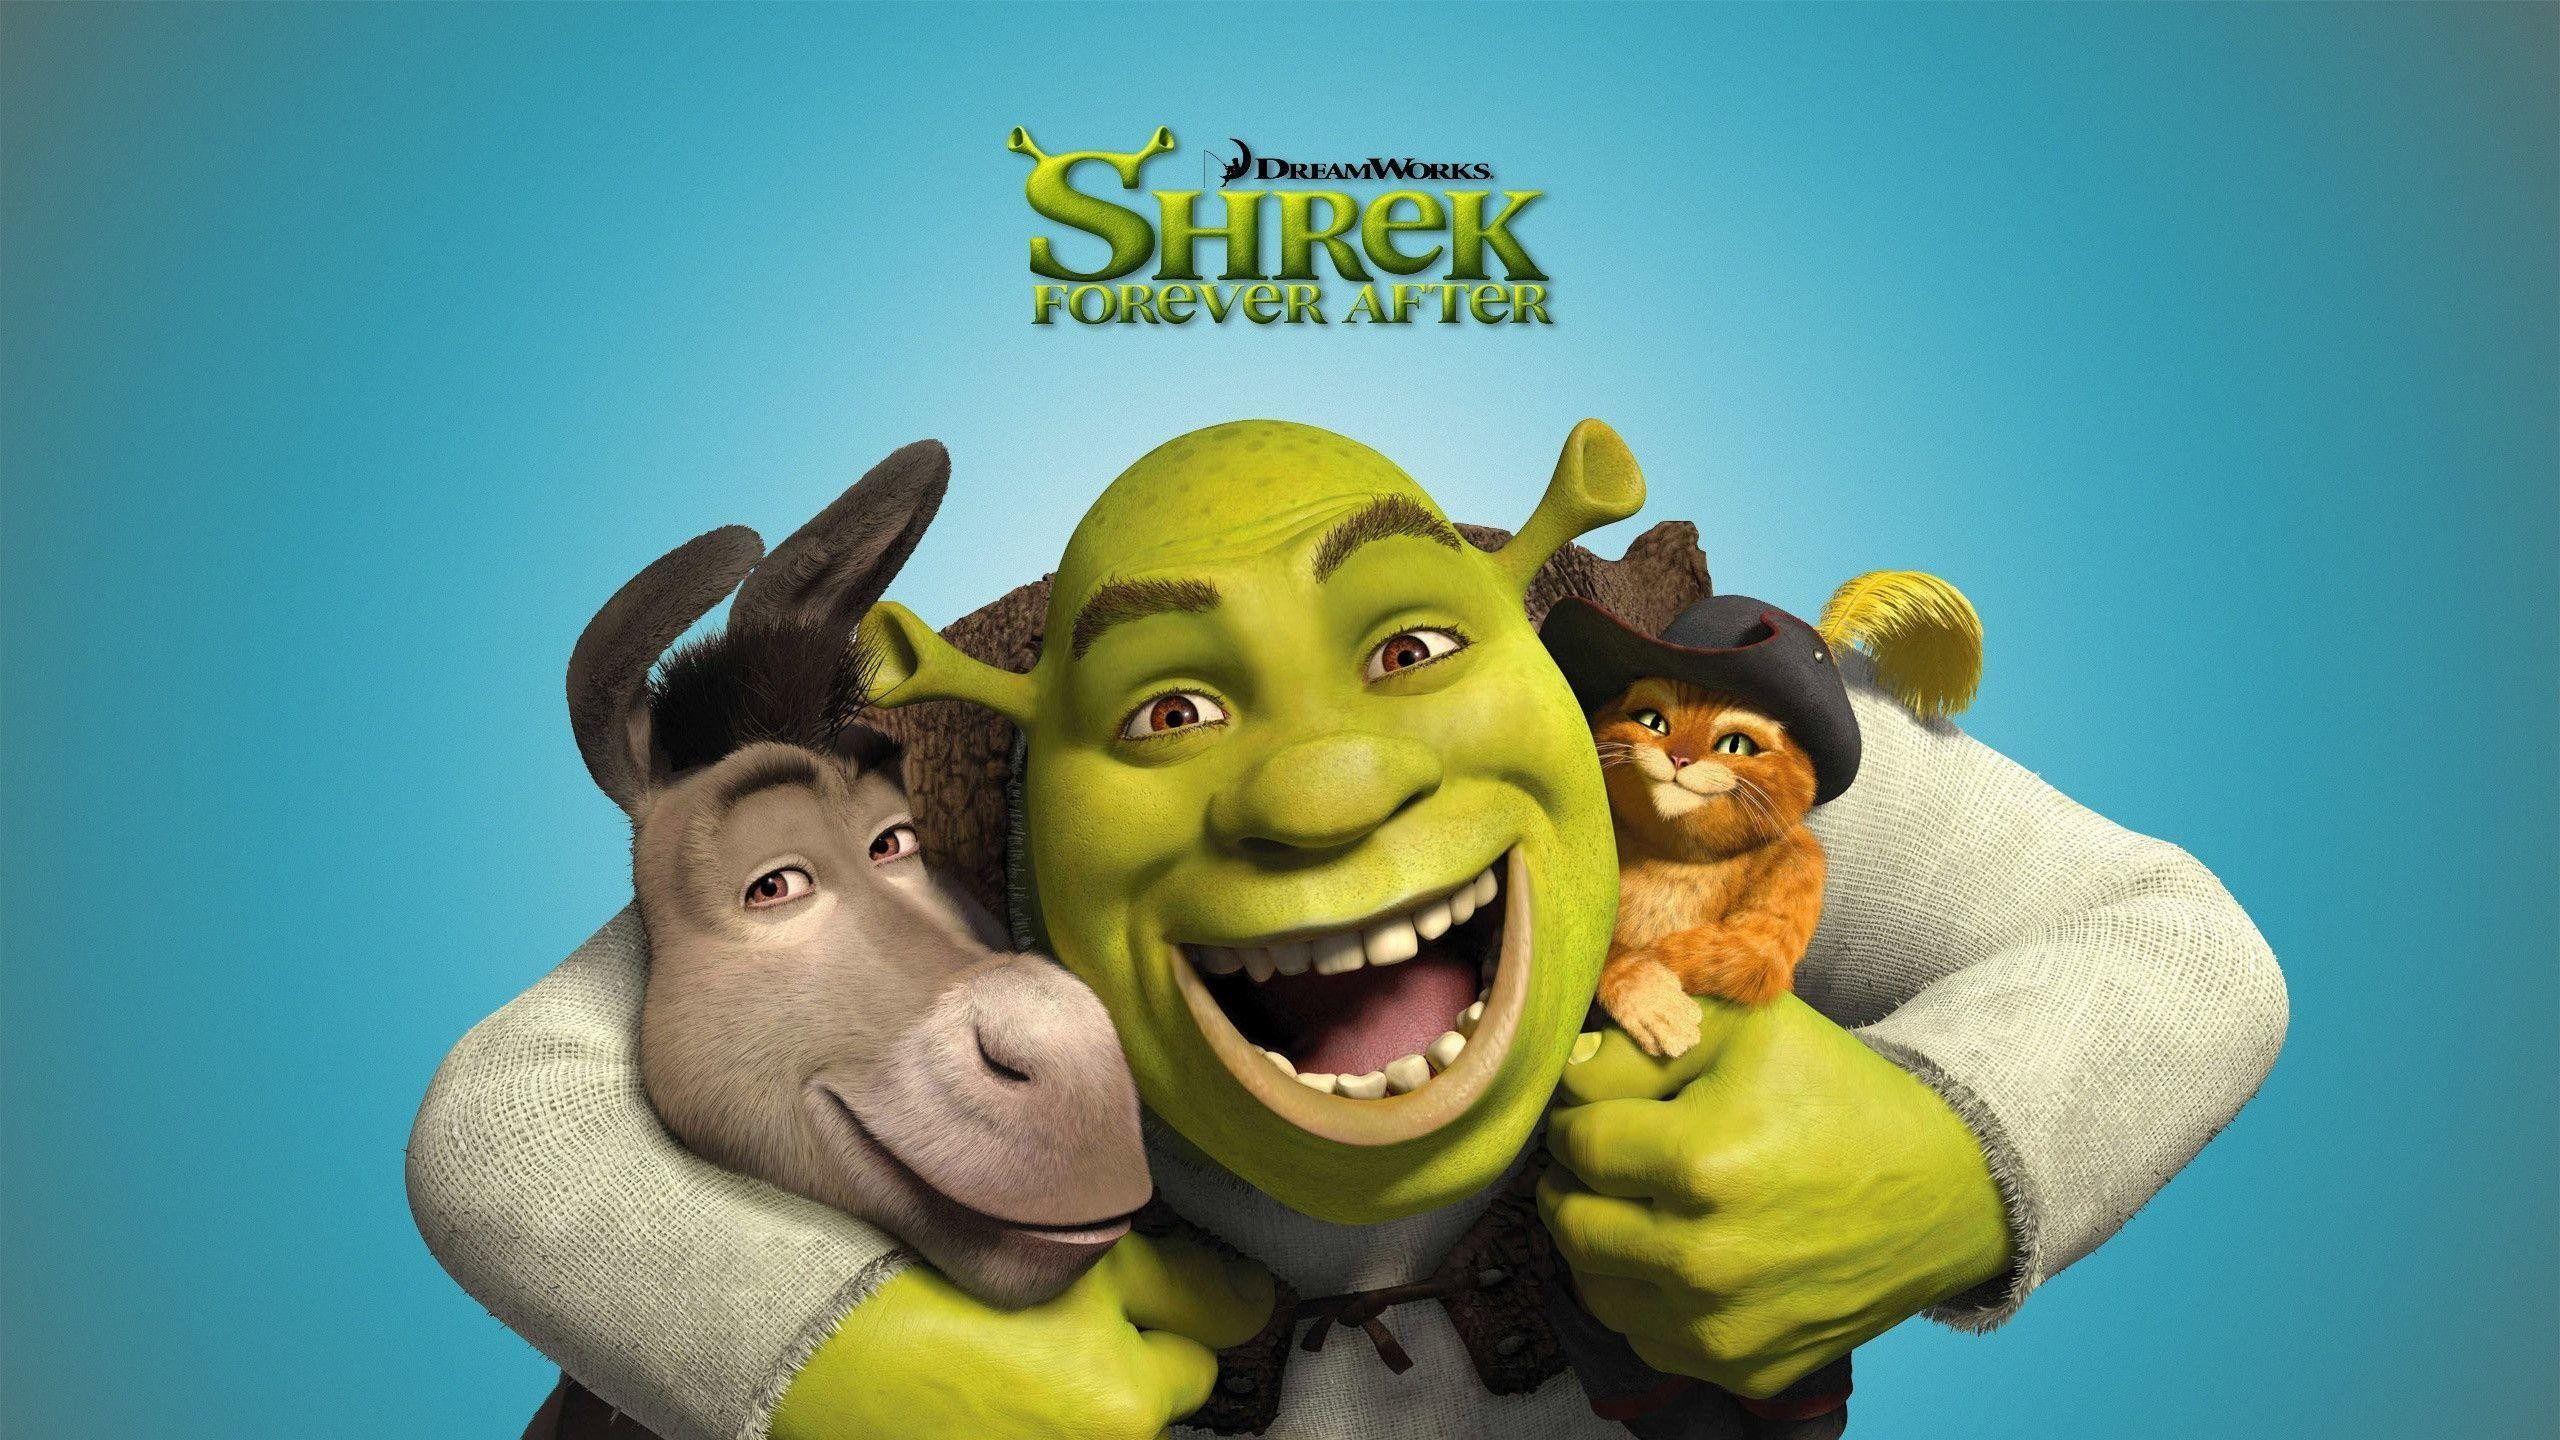 Shrek 5 Filming to Start this Year, Release Date and Plot Details are also Revealed